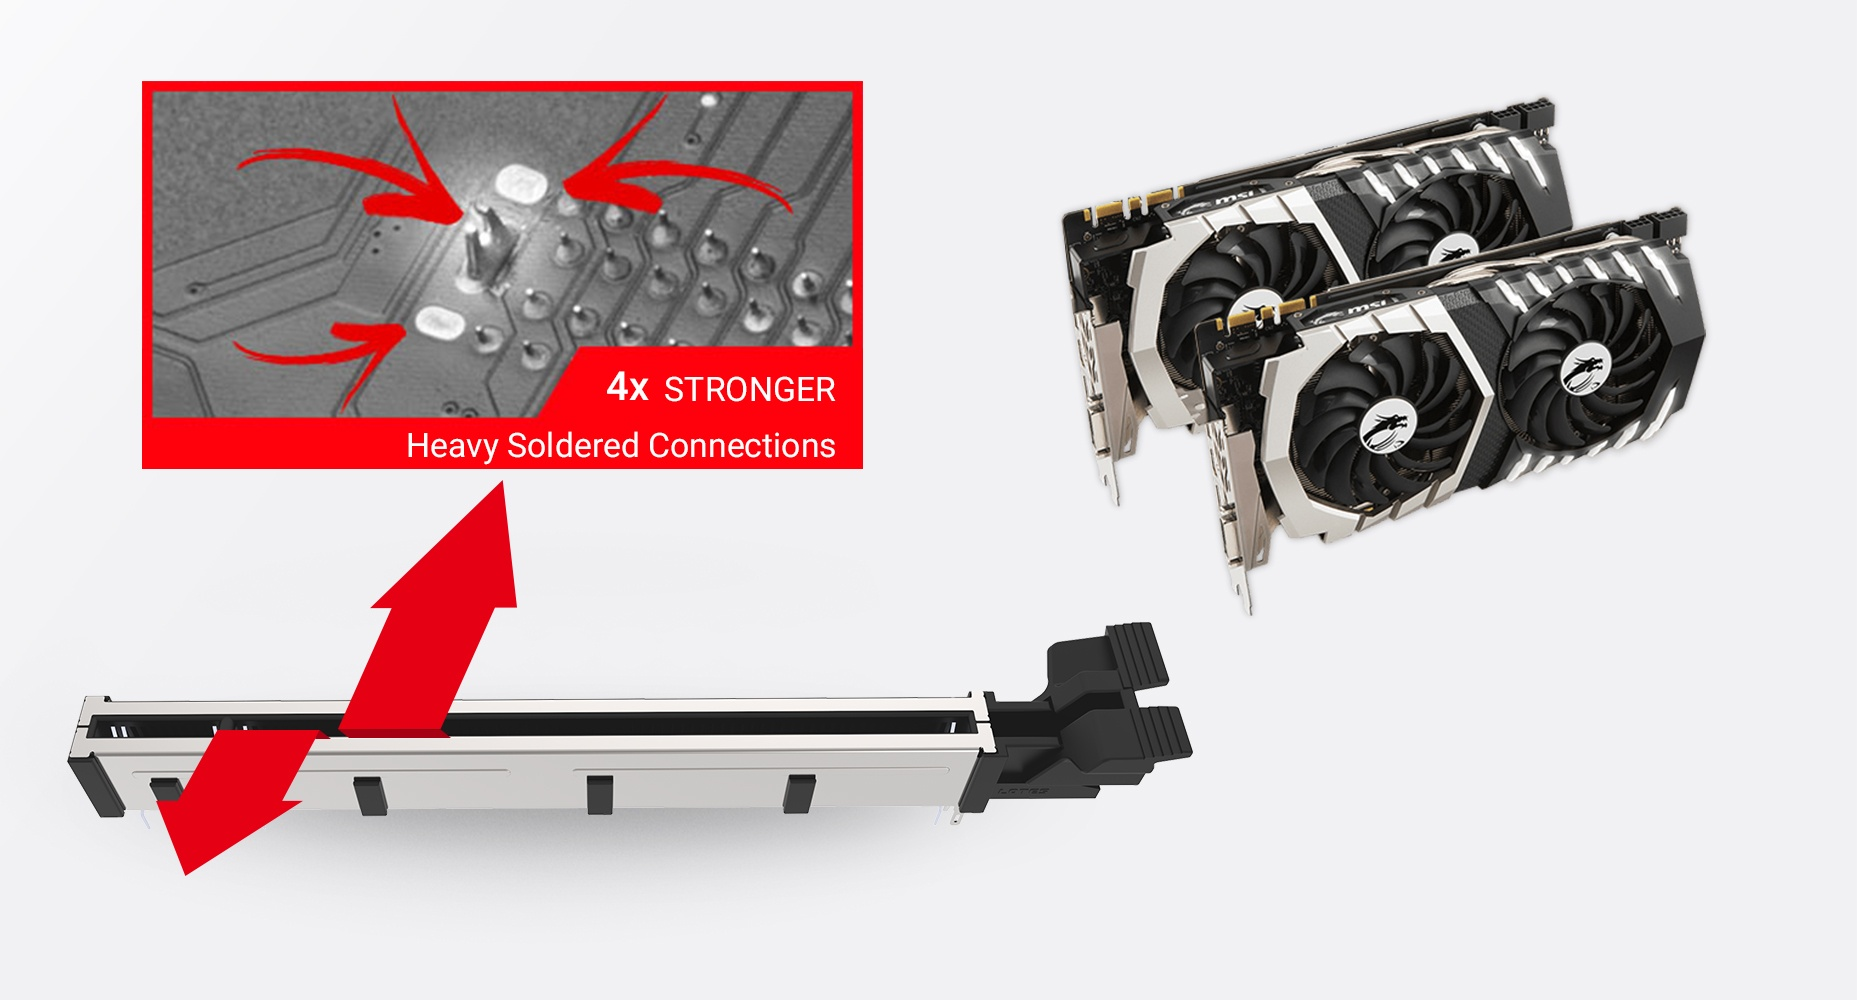 MSI MEG Z490 ACE MULTIPLE GPU SUPPORTS AND STEEL ARMOR